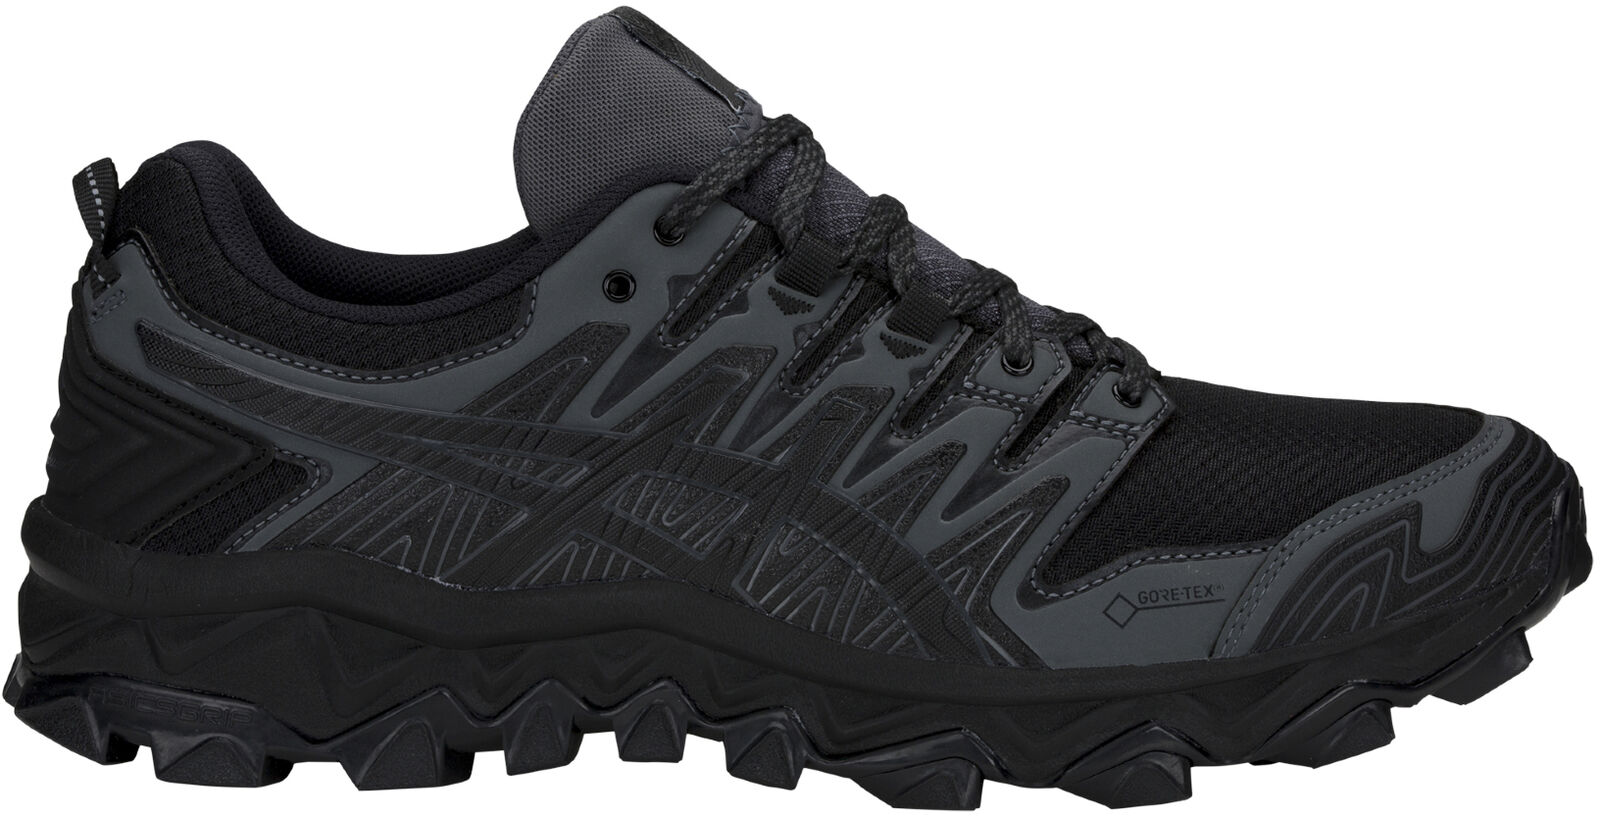 Asics Gel FujiTrabuco FujiTrabuco FujiTrabuco 7 Goretex Hombres Trail Running Zapatos-Negro 7f5440